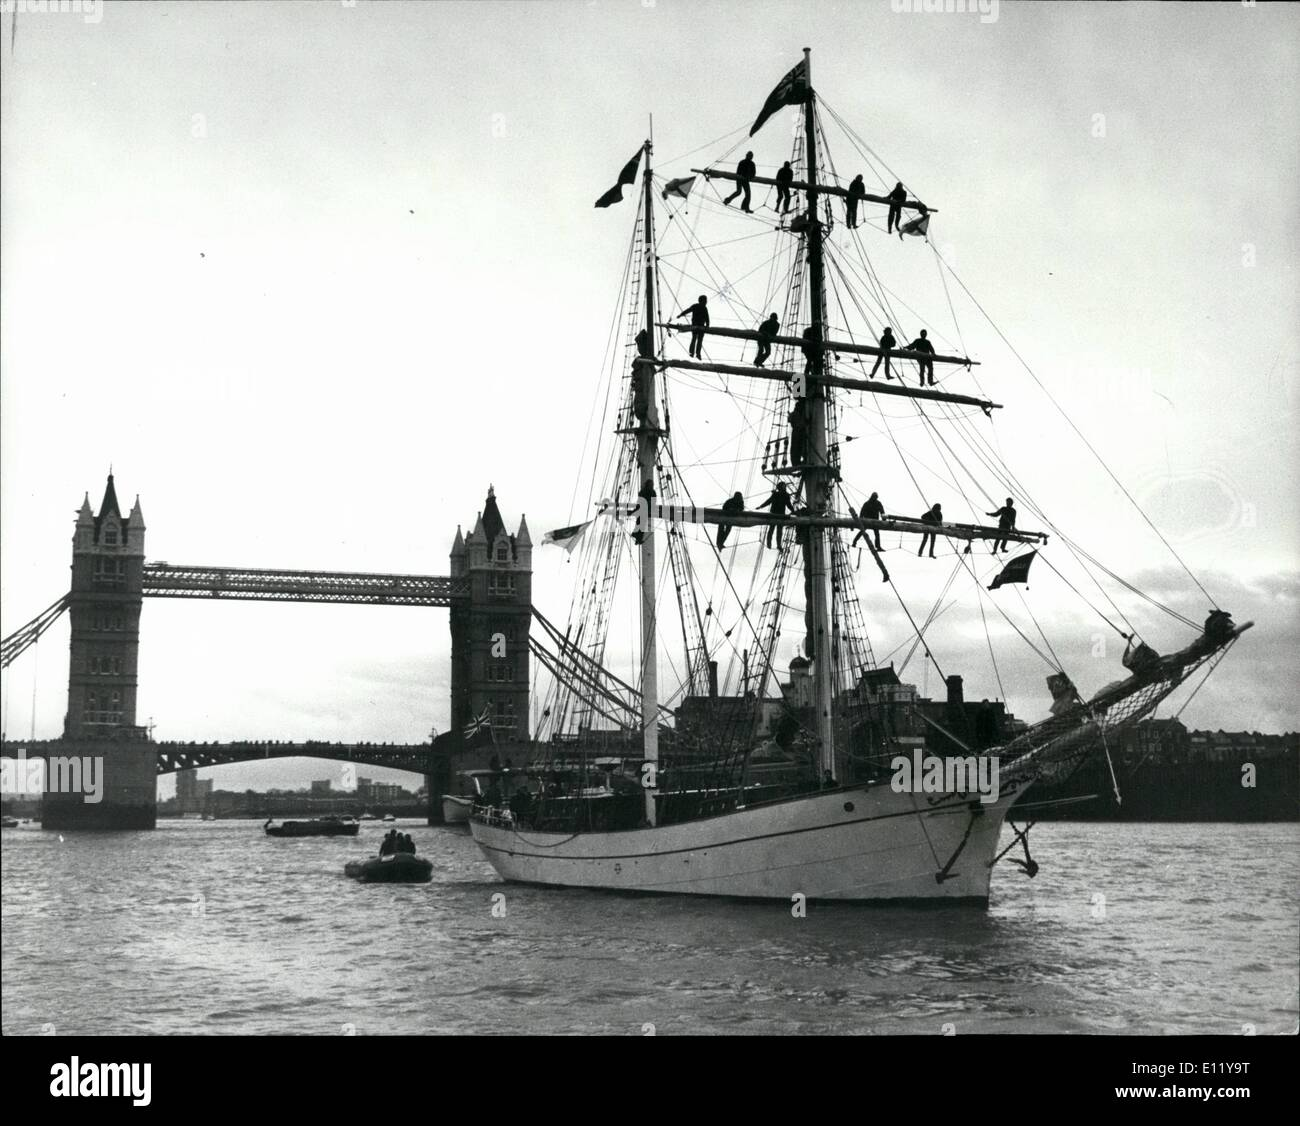 Dec. 12, 1980 - Eye of the wind returns to London.: Last Saturday, the 403rd anniversary of the start of Sir Francis Drake's circumnavigation in Golden Hind, the brigantine eye of the wind sailed up the Thames to St. Katherine's Dock to mark the completion of the two year round the world expedition Operation Drake, for the past two years young explorers, scientists and other young people have taken part in the expedition of adventure and discovery. At Saturday's ceremonies the expedition leader, Lt Col - Stock Image